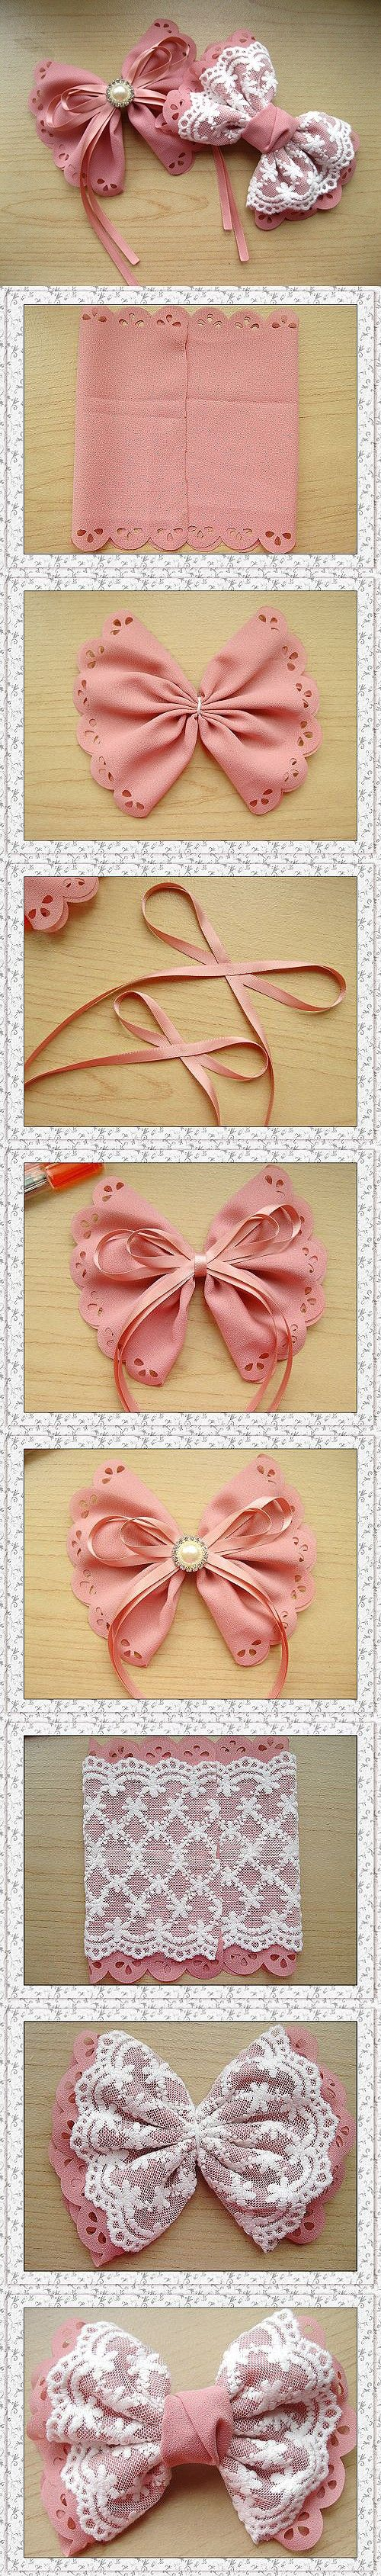 pretty hair bows!                                                                                                                                                                                 More